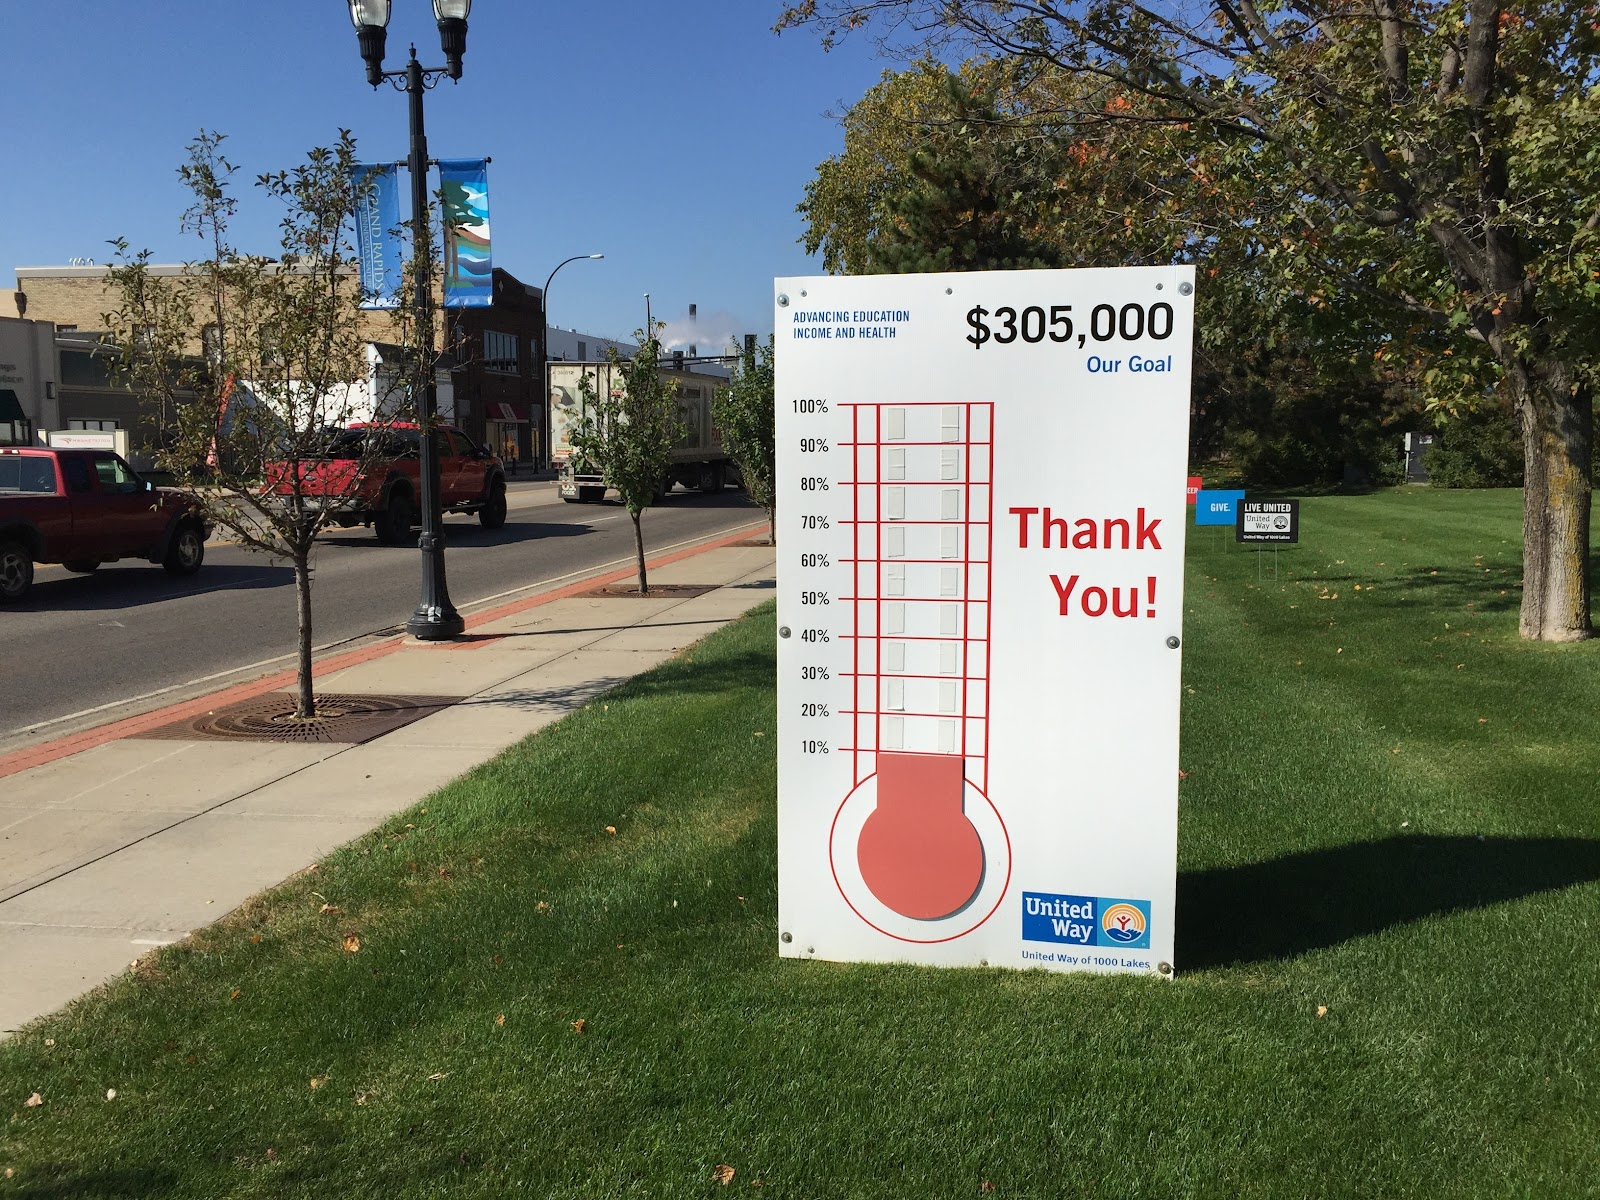 A fundraising thermometer chart